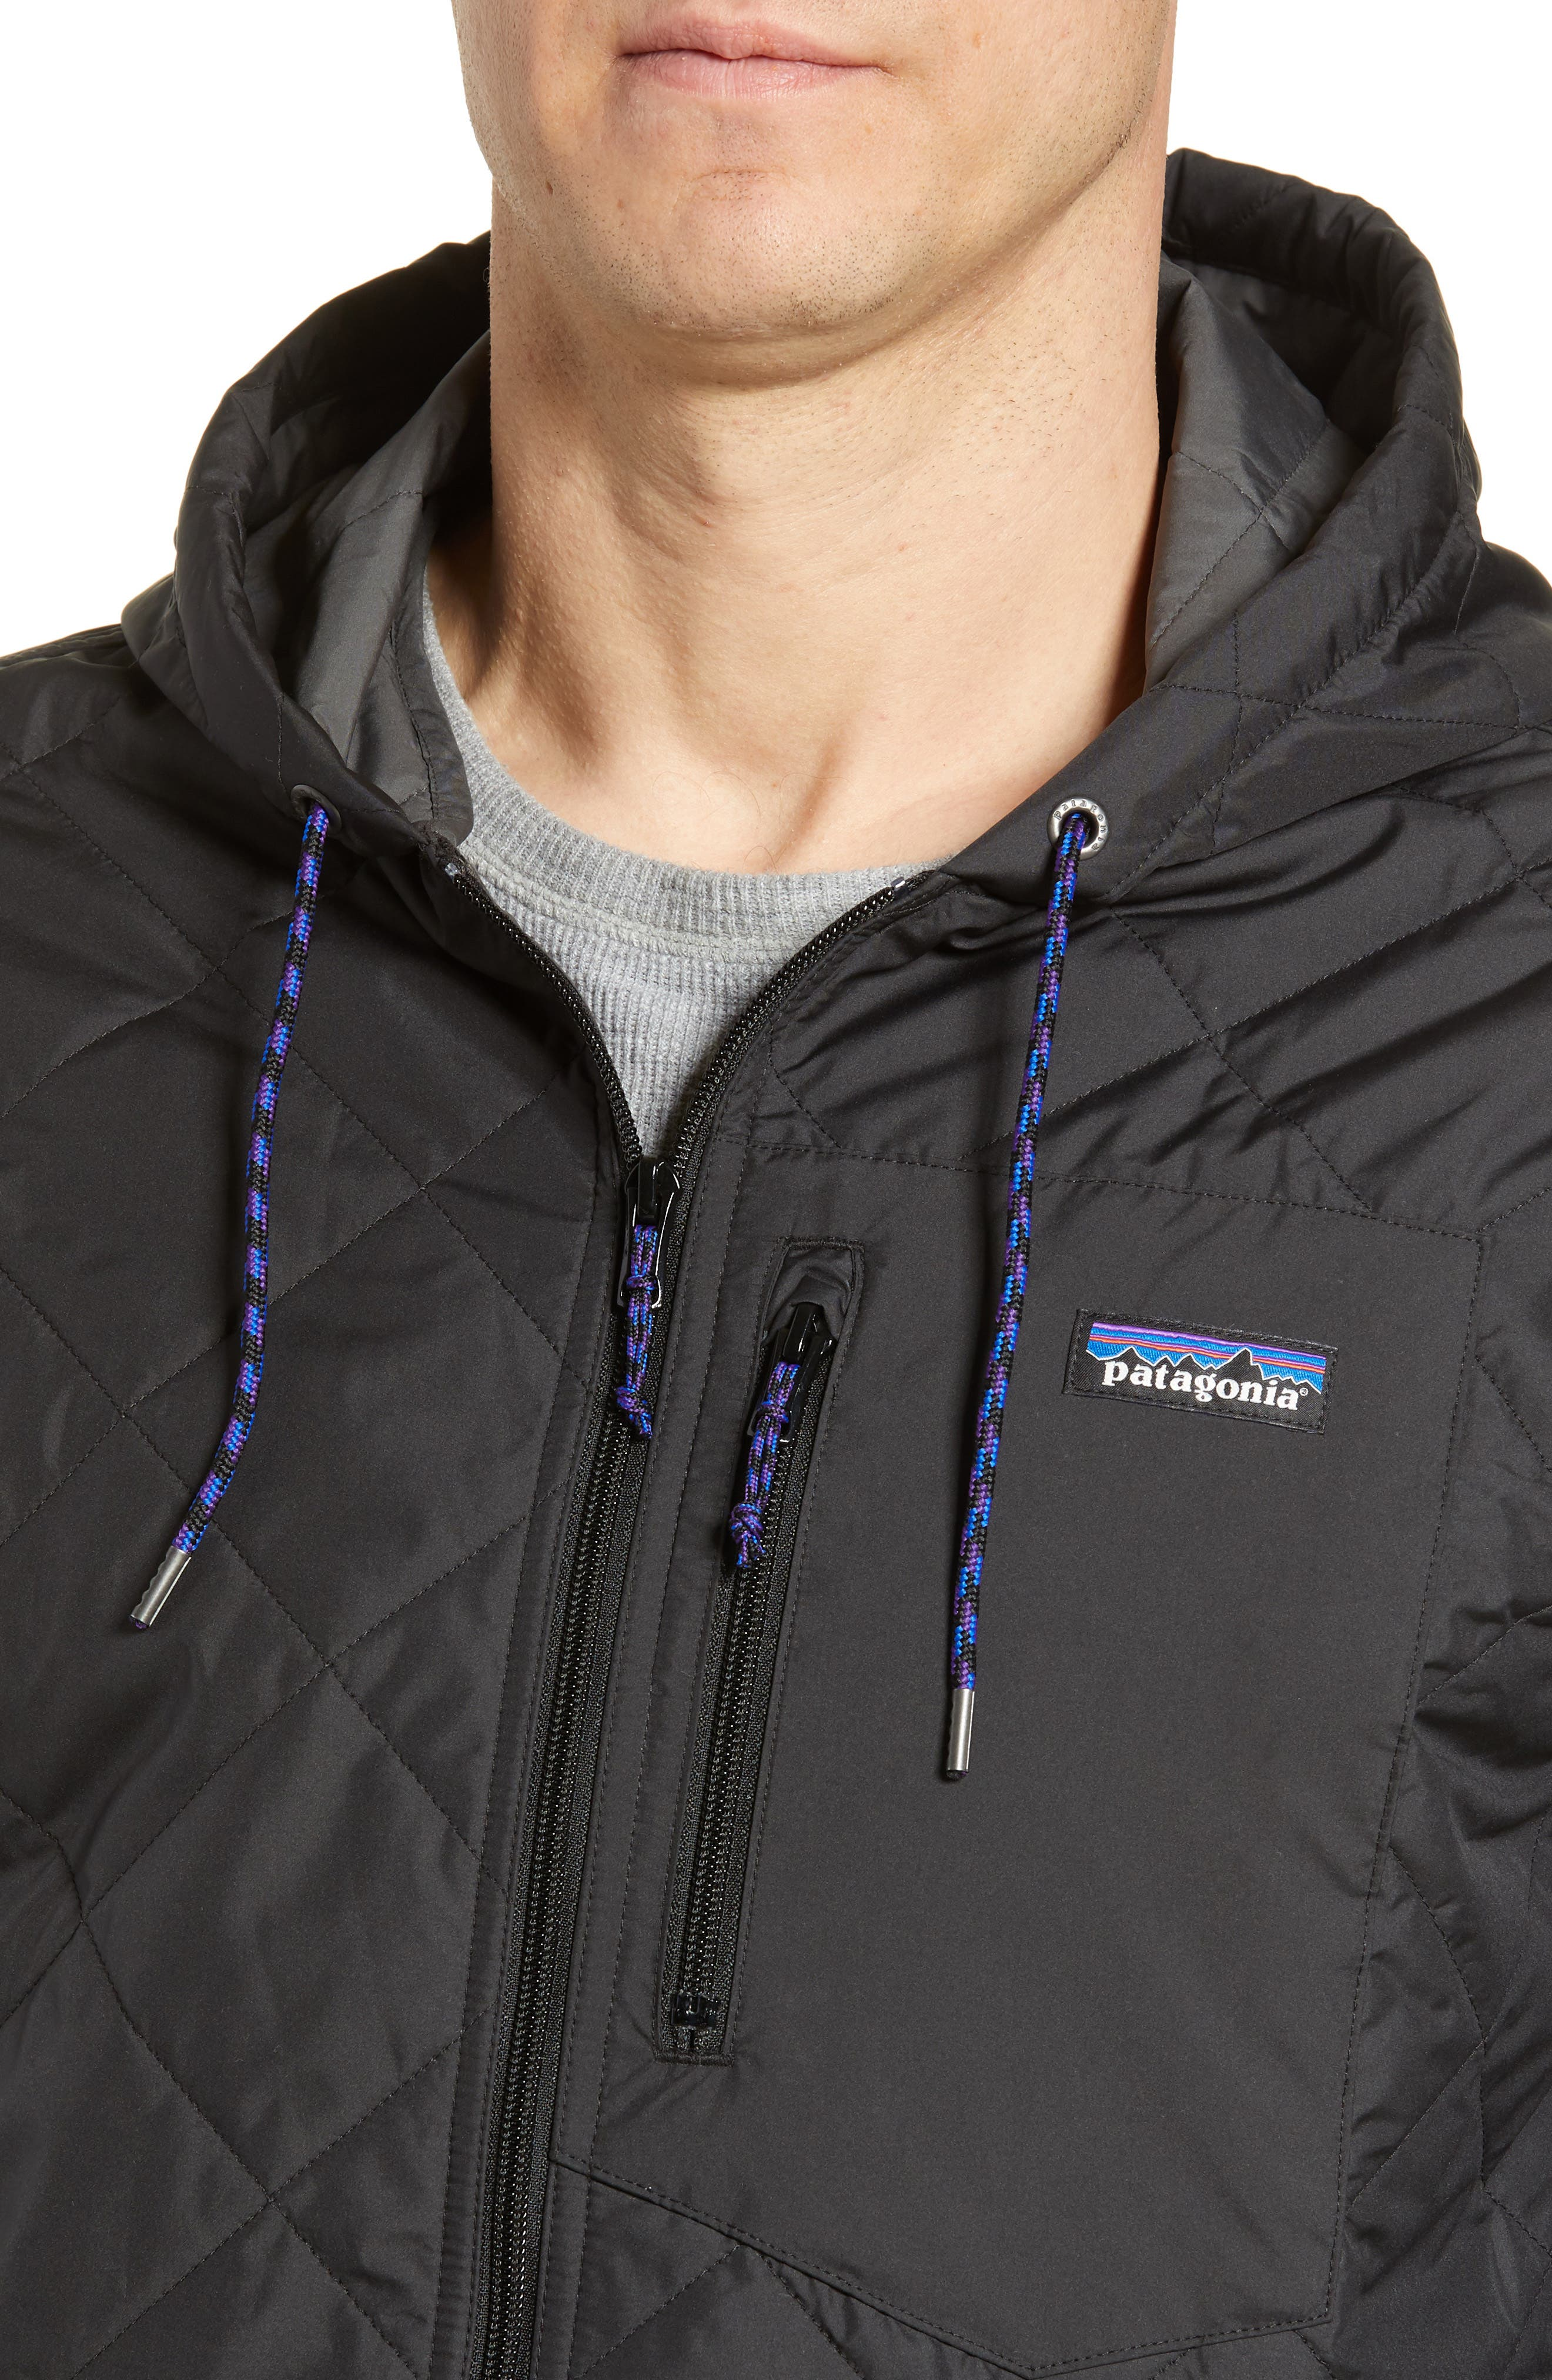 PATAGONIA, Diamond Quilt Ripstop Hooded Jacket, Alternate thumbnail 5, color, 001